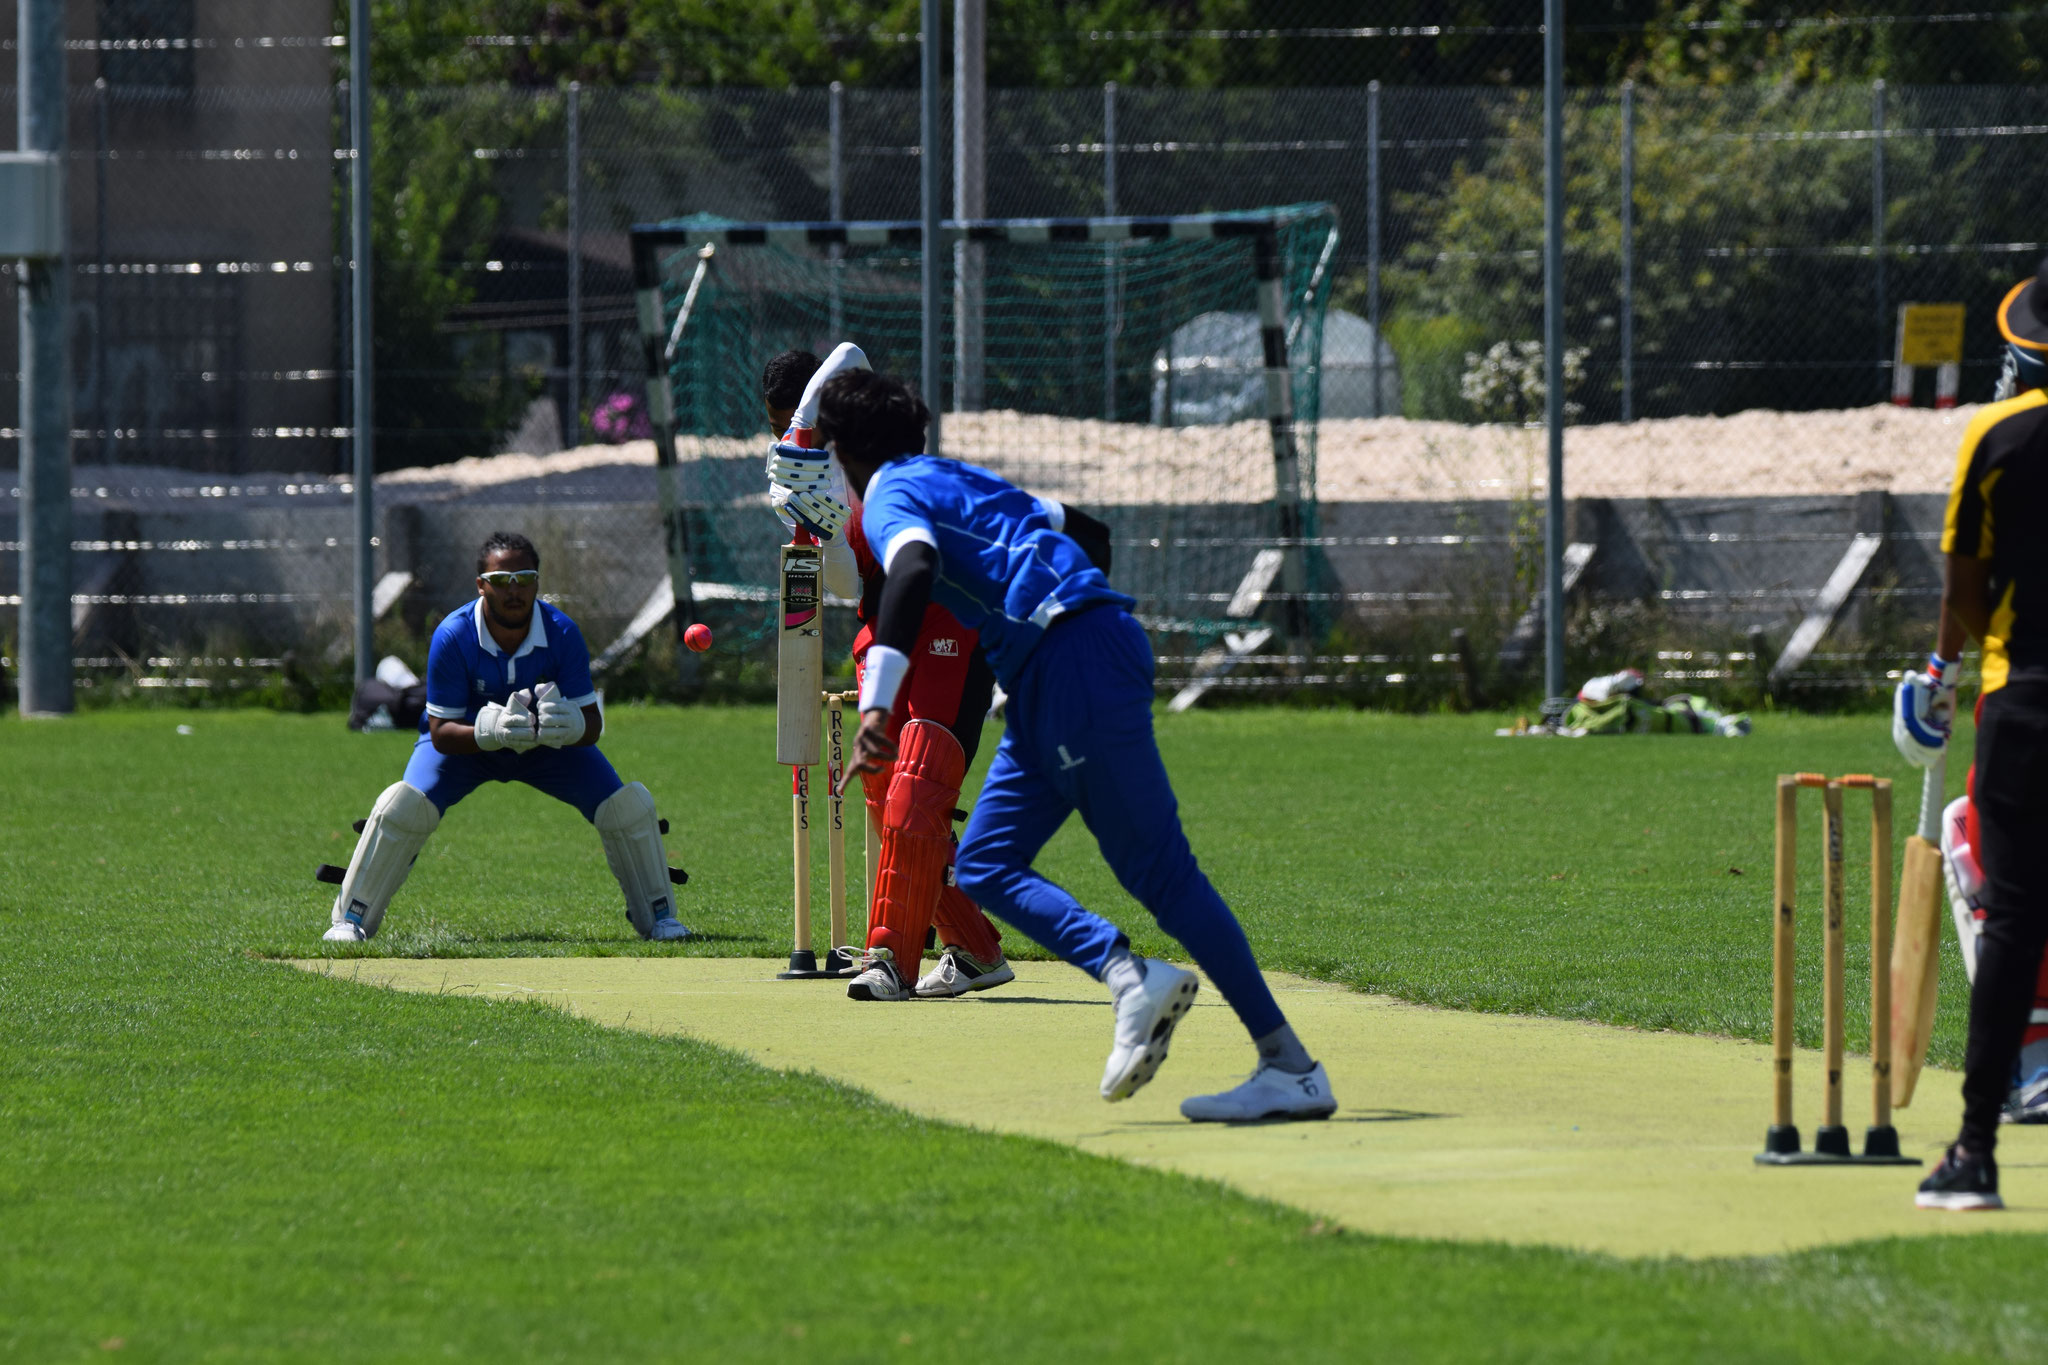 Over 4 and it was Keeran's turn again. A golden duck and the 5th batsman has to depart. Edged and caught behind.